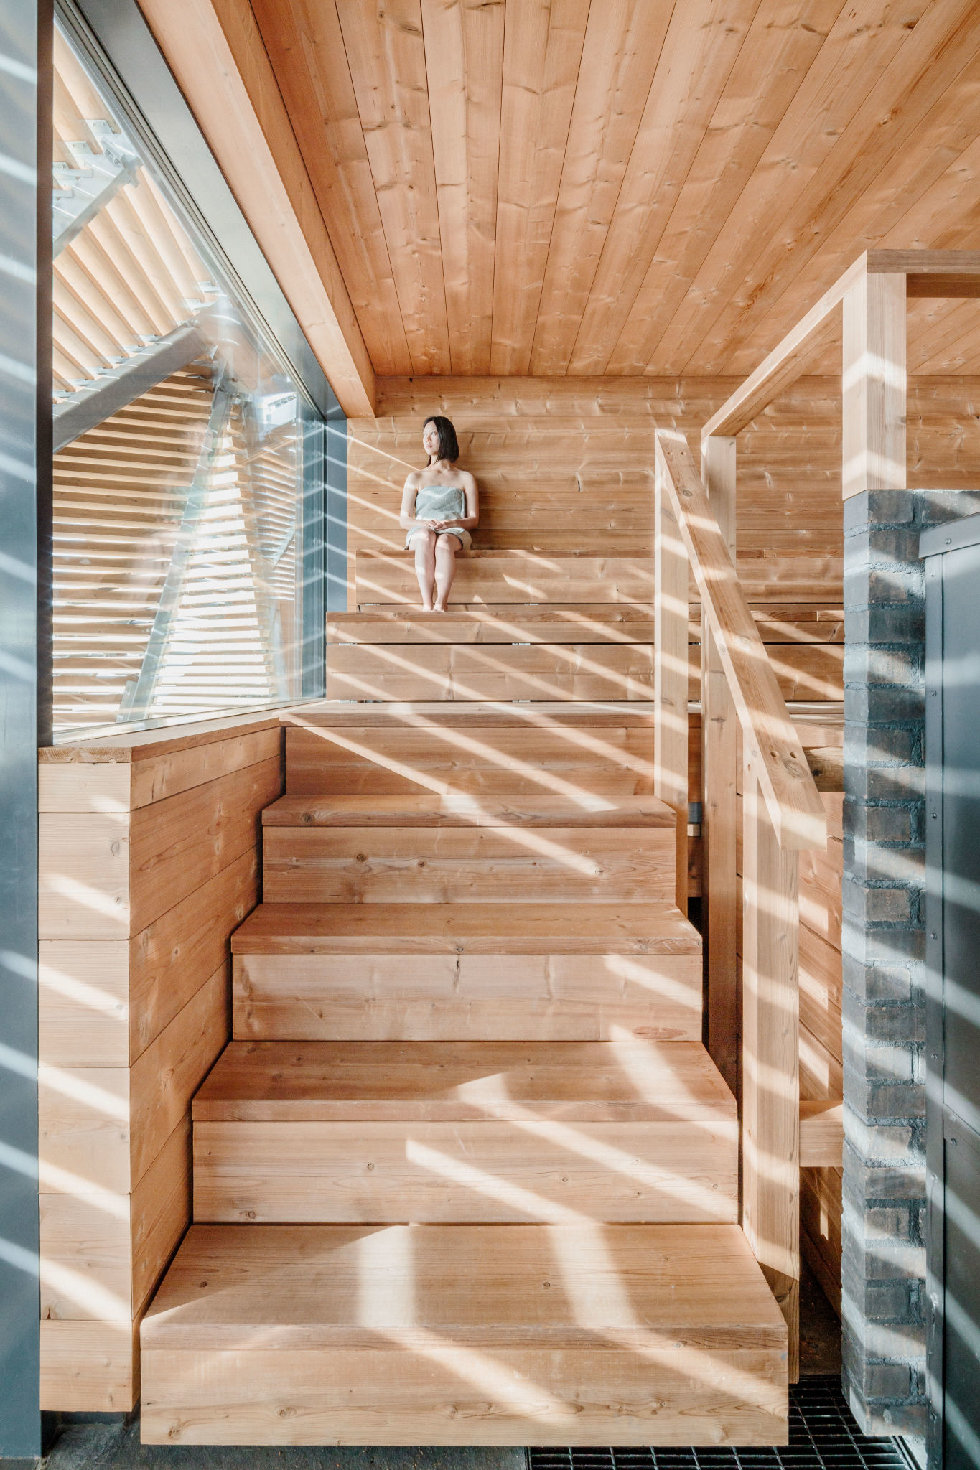 L\u00f6yly's chic and sustainable wooden slat design